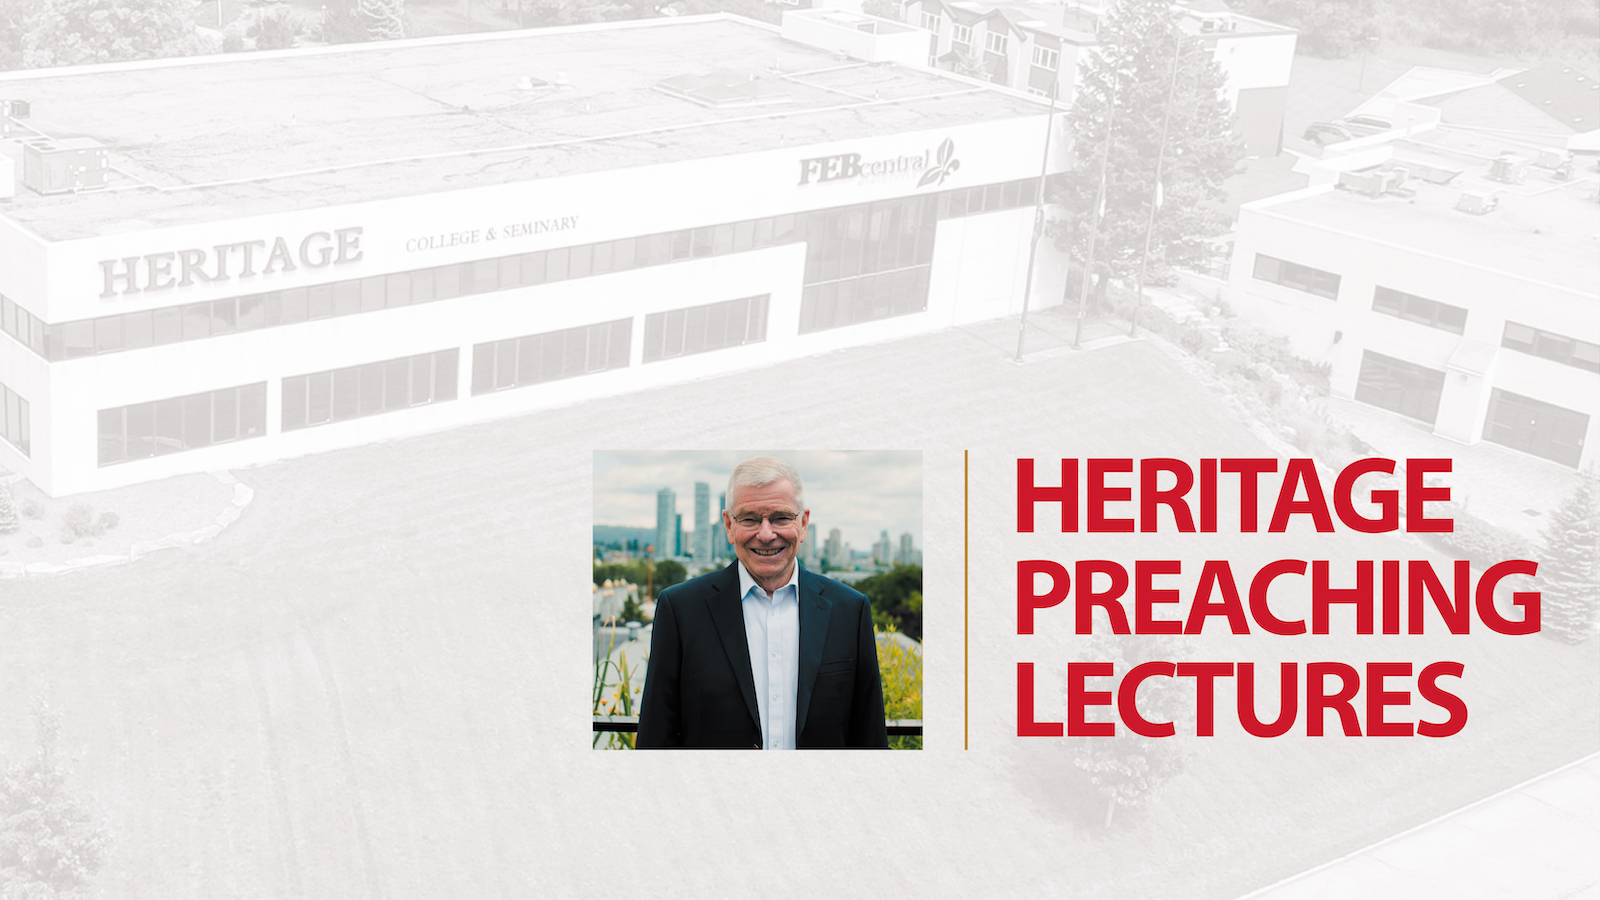 Heritage Preaching Lectures 2021